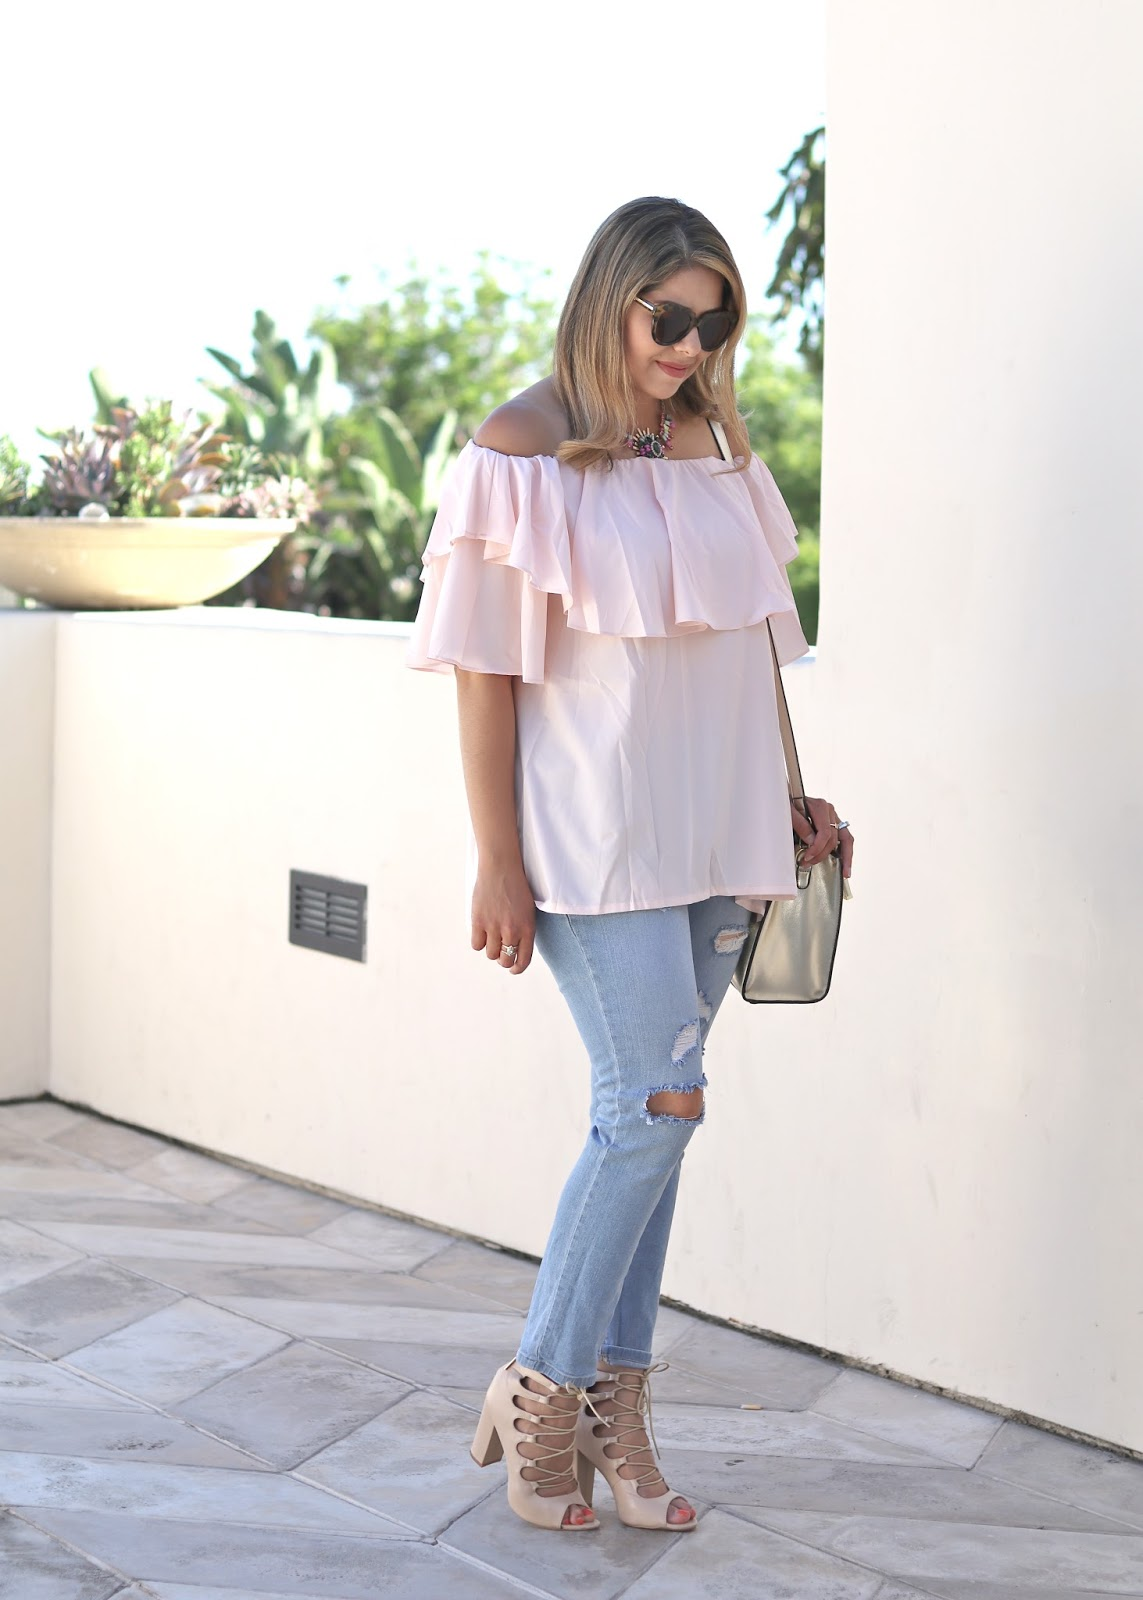 how to wear blush casually, casual blush outfit, casual Vday outfit, chicwish frilly top, chicwish blogger